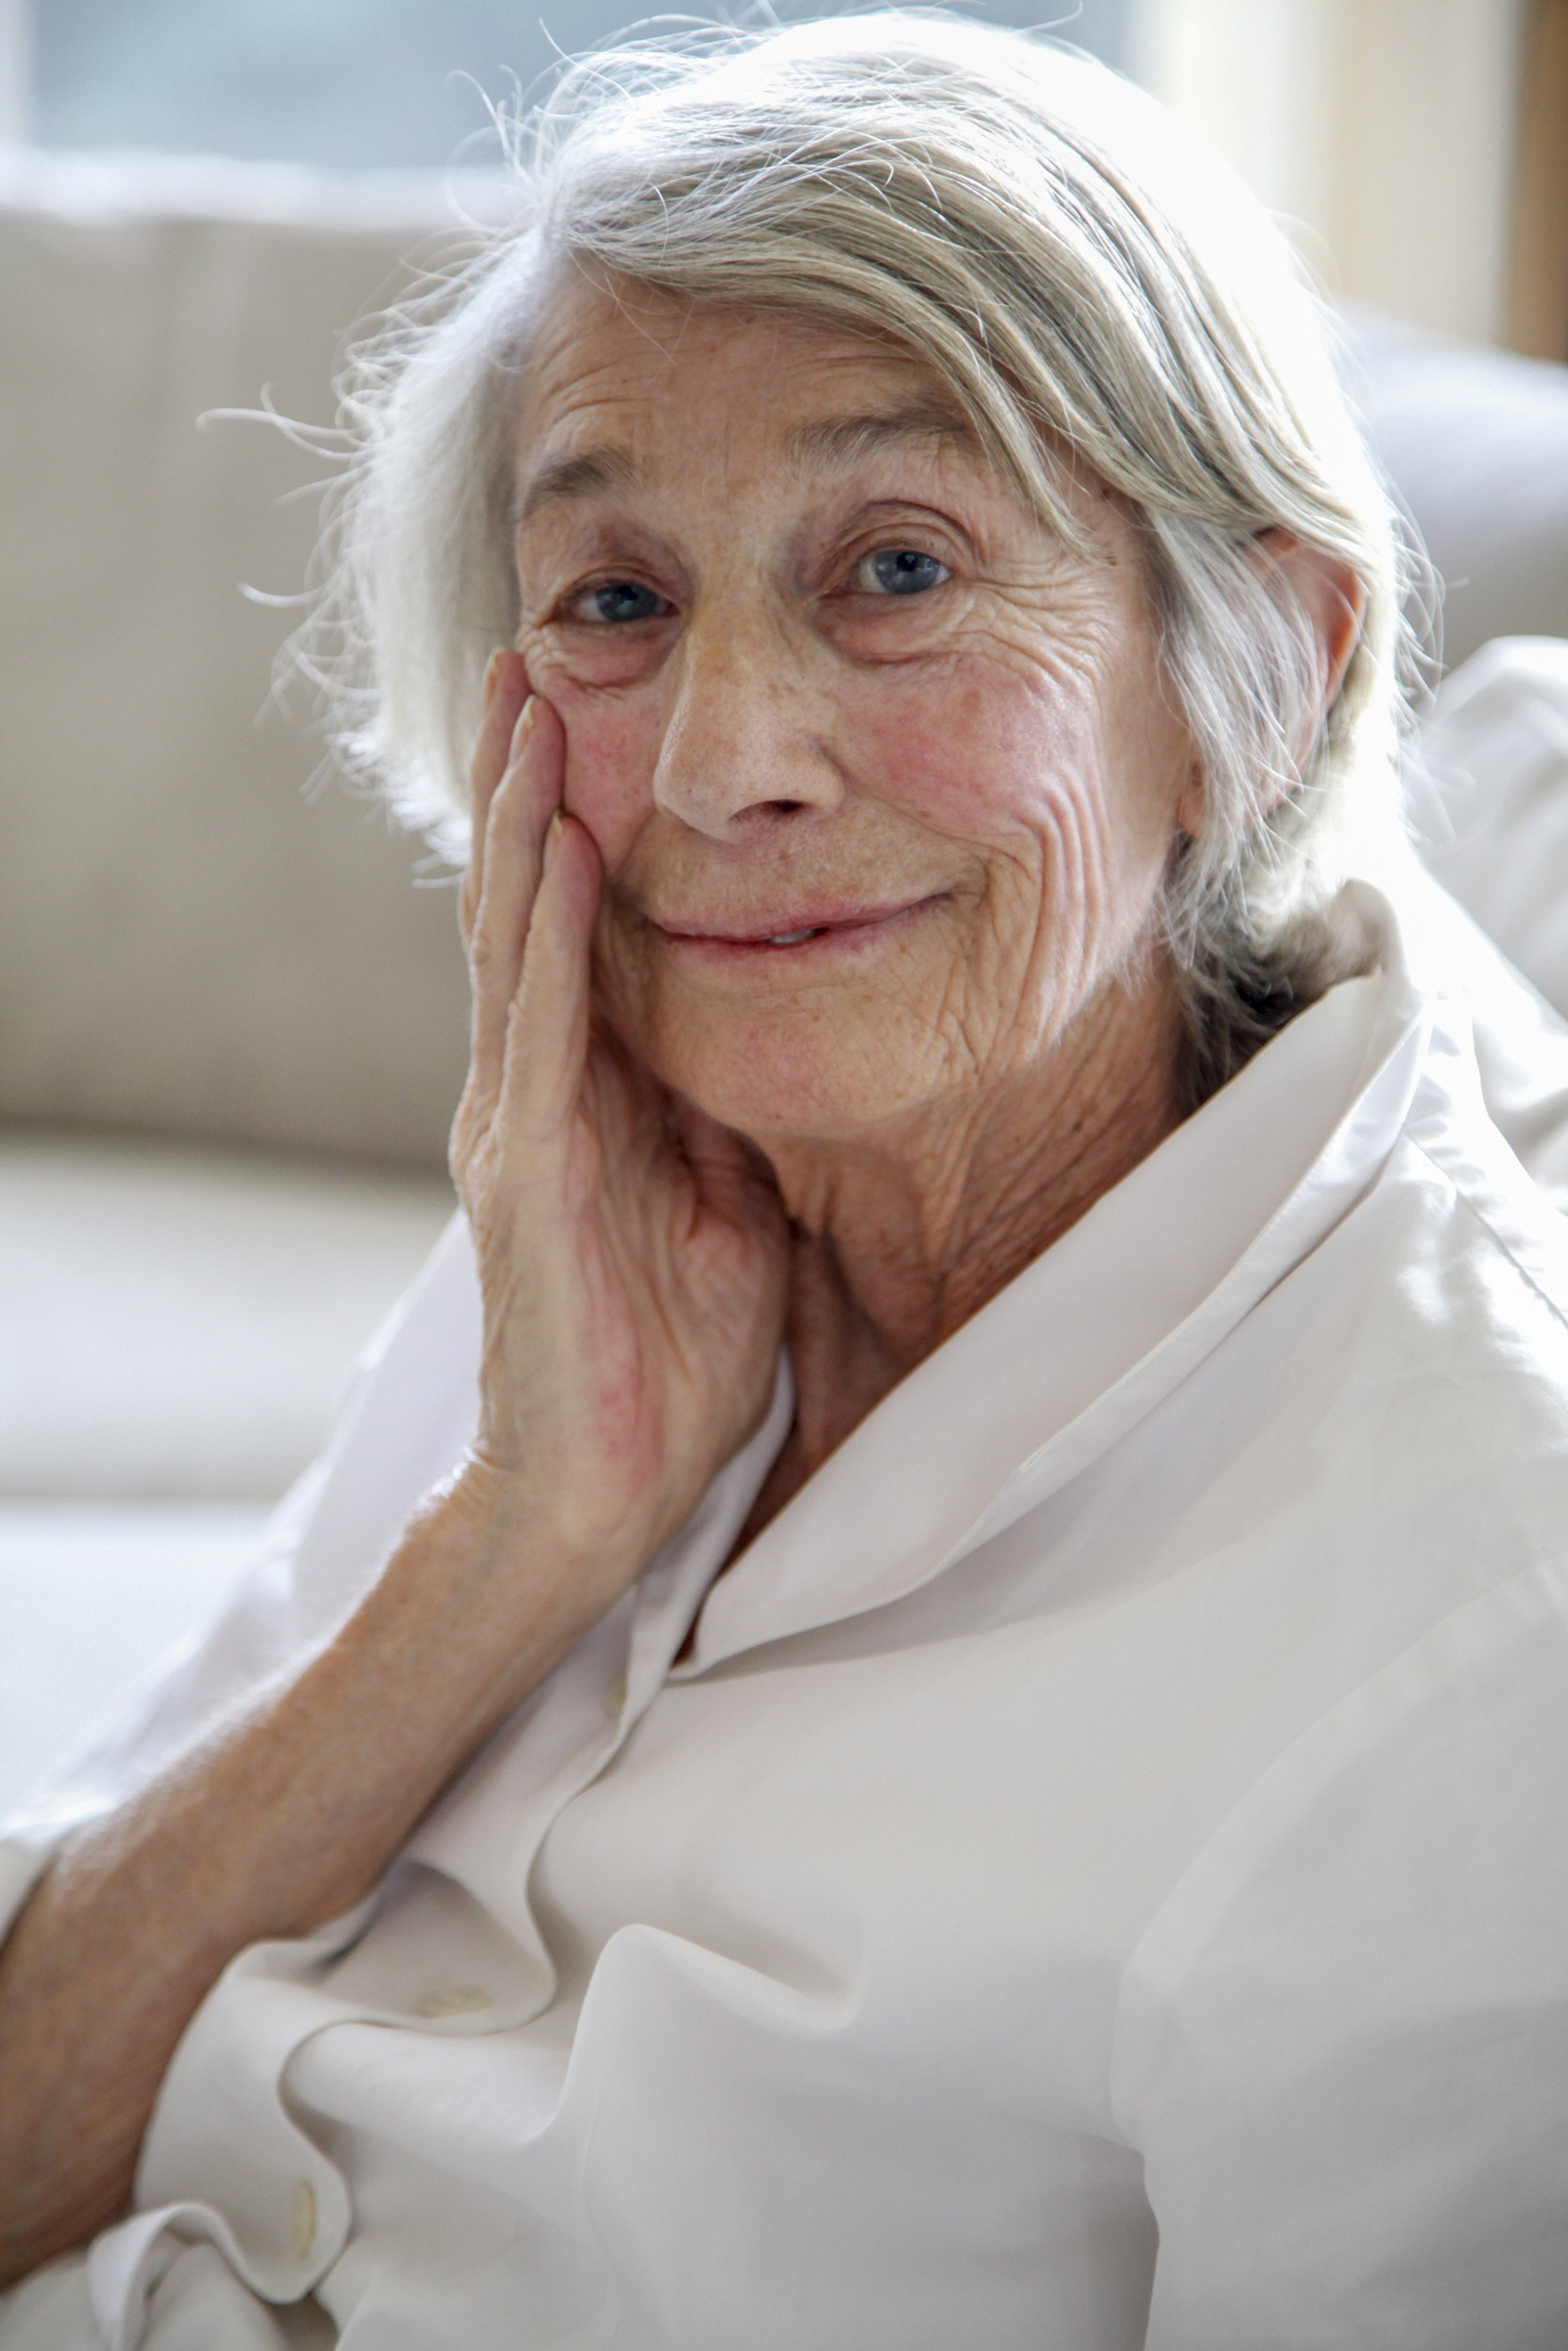 In addition to her Pulitzer Prize, Oliver, shown here in 2013, received the National Book Award for Poetry in 1992